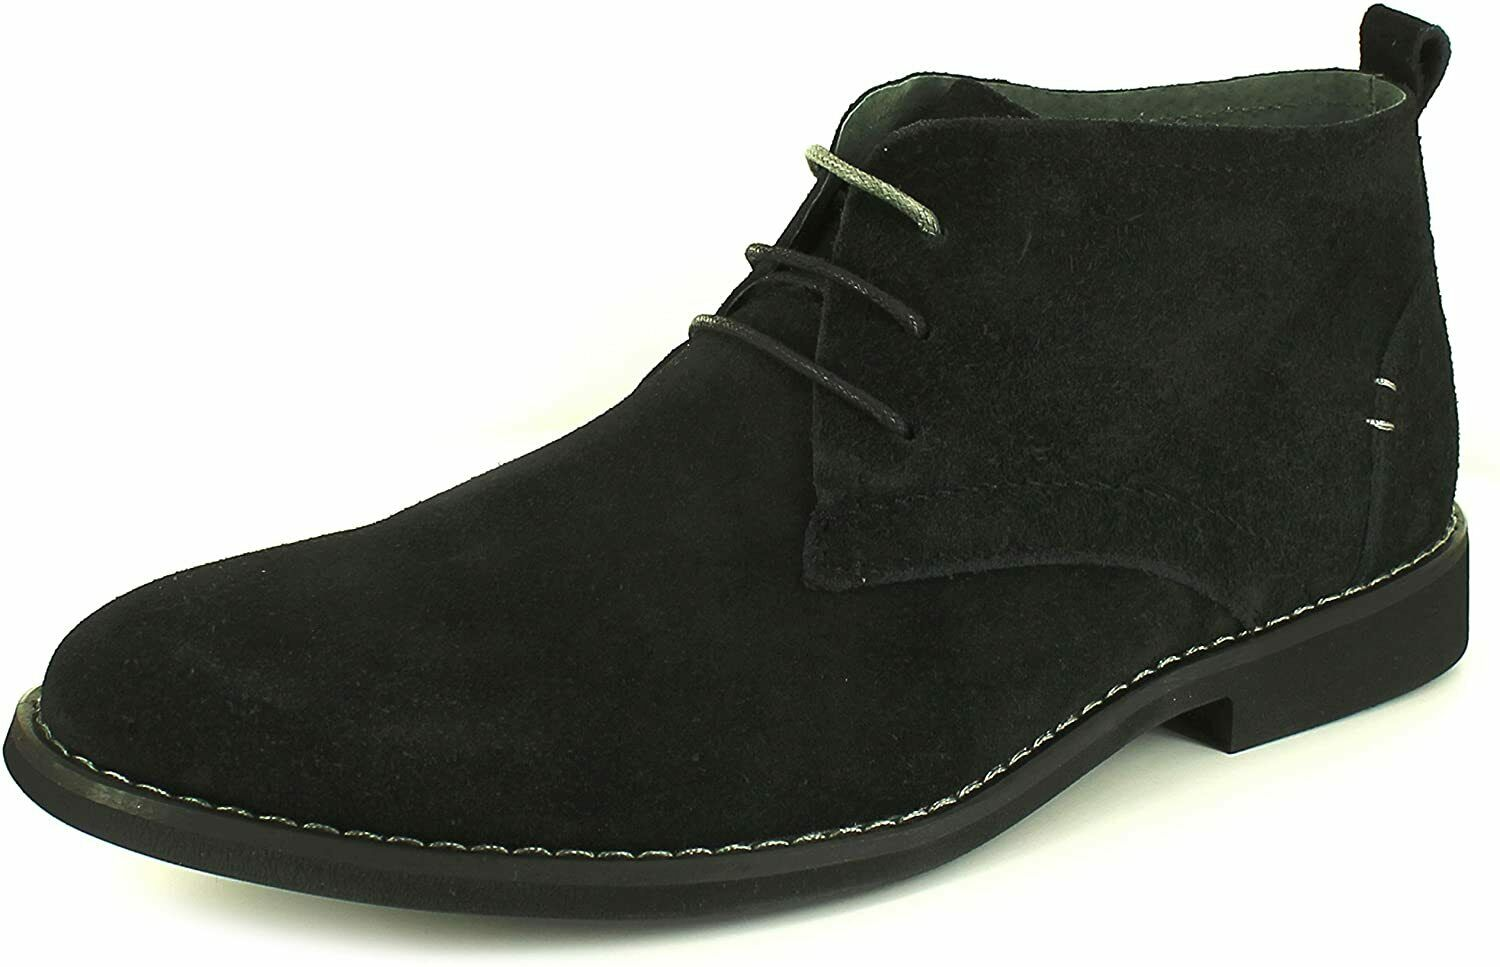 Front ROSCOE Mens Genuine Suede Leather Lace Up Desert Boots Black Size: 6 UK